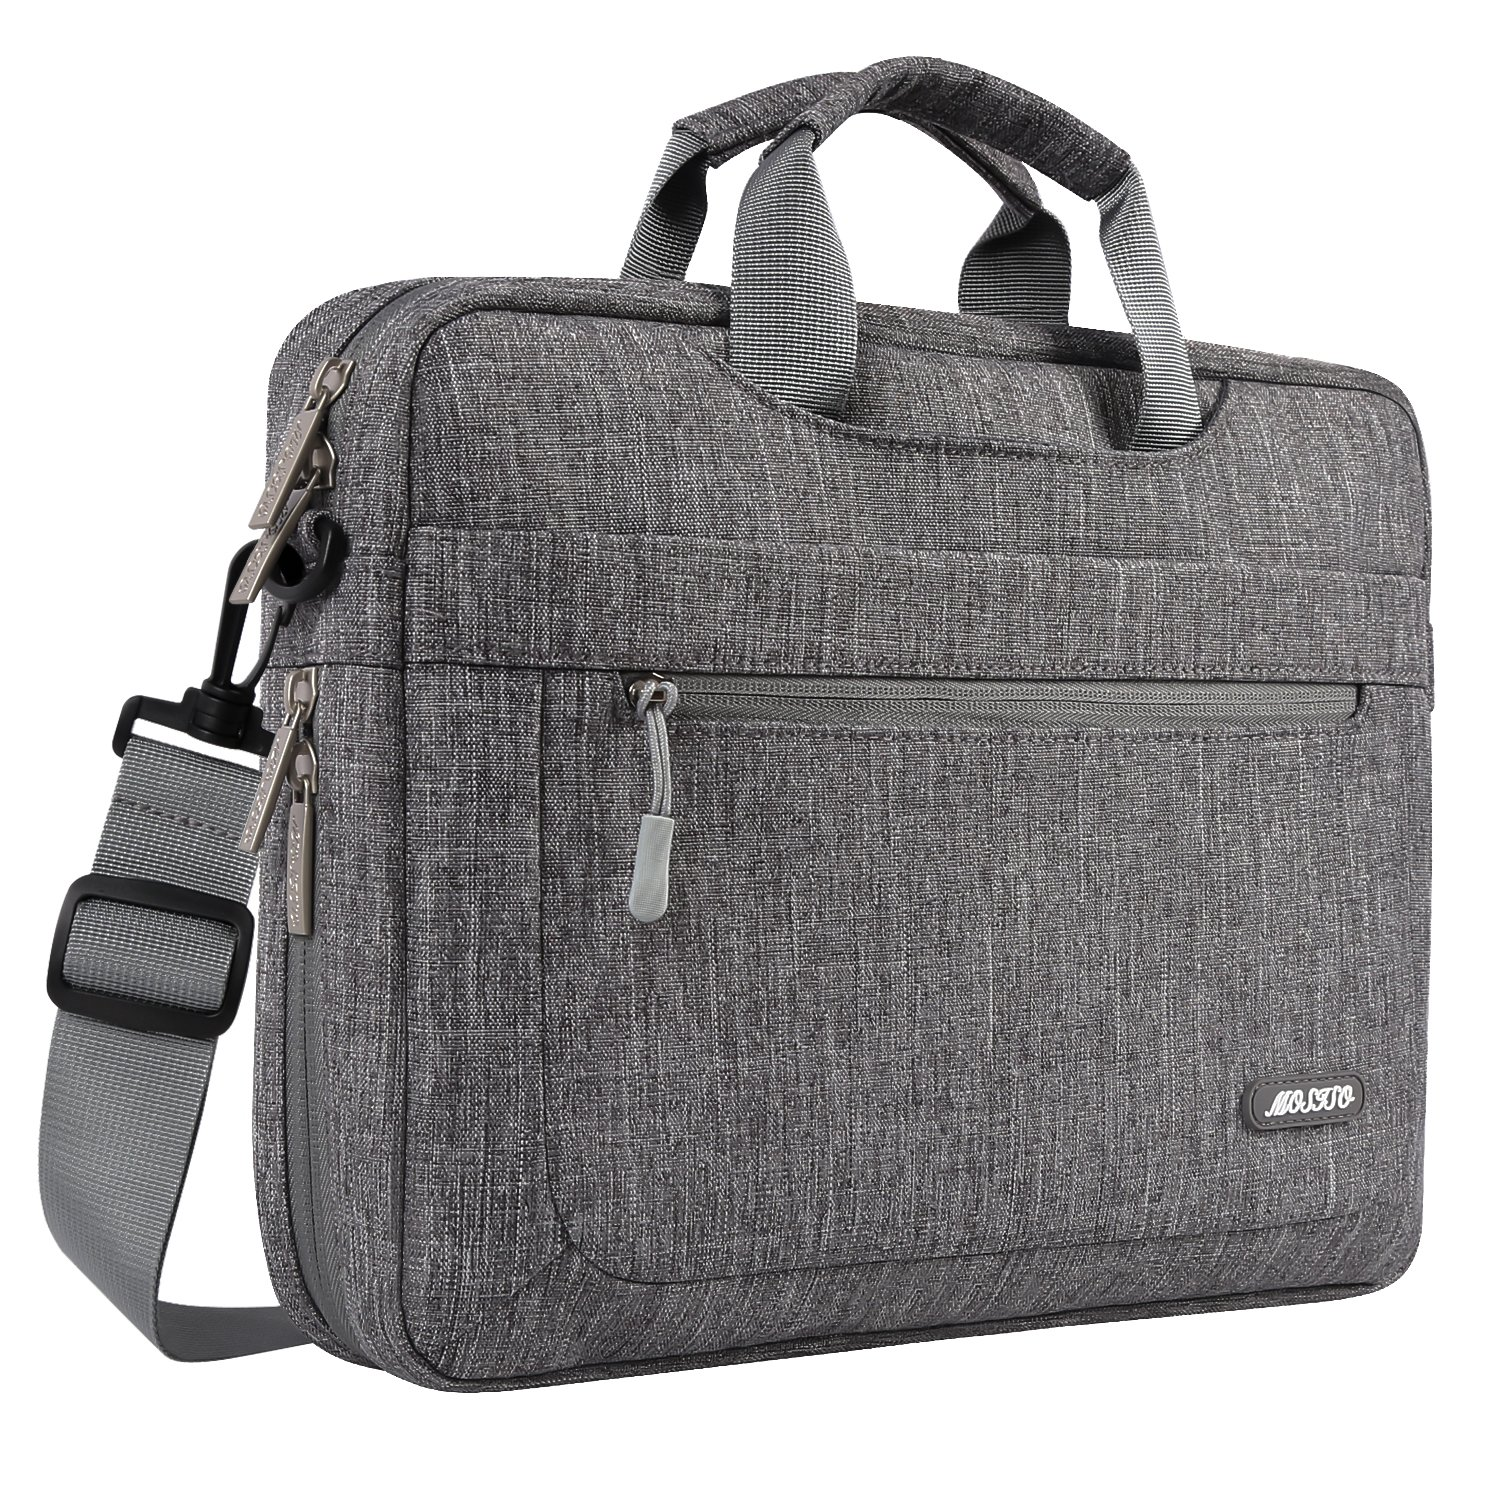 MOSISO Polyester Messenger Laptop Shoulder Bag Compatible 11.6-13.3 inch MacBook Air, MacBook Pro, Notebook Computer, Briefcase Handbag Carrying Case Cover with Adjustable Depth at Bottom, Gray